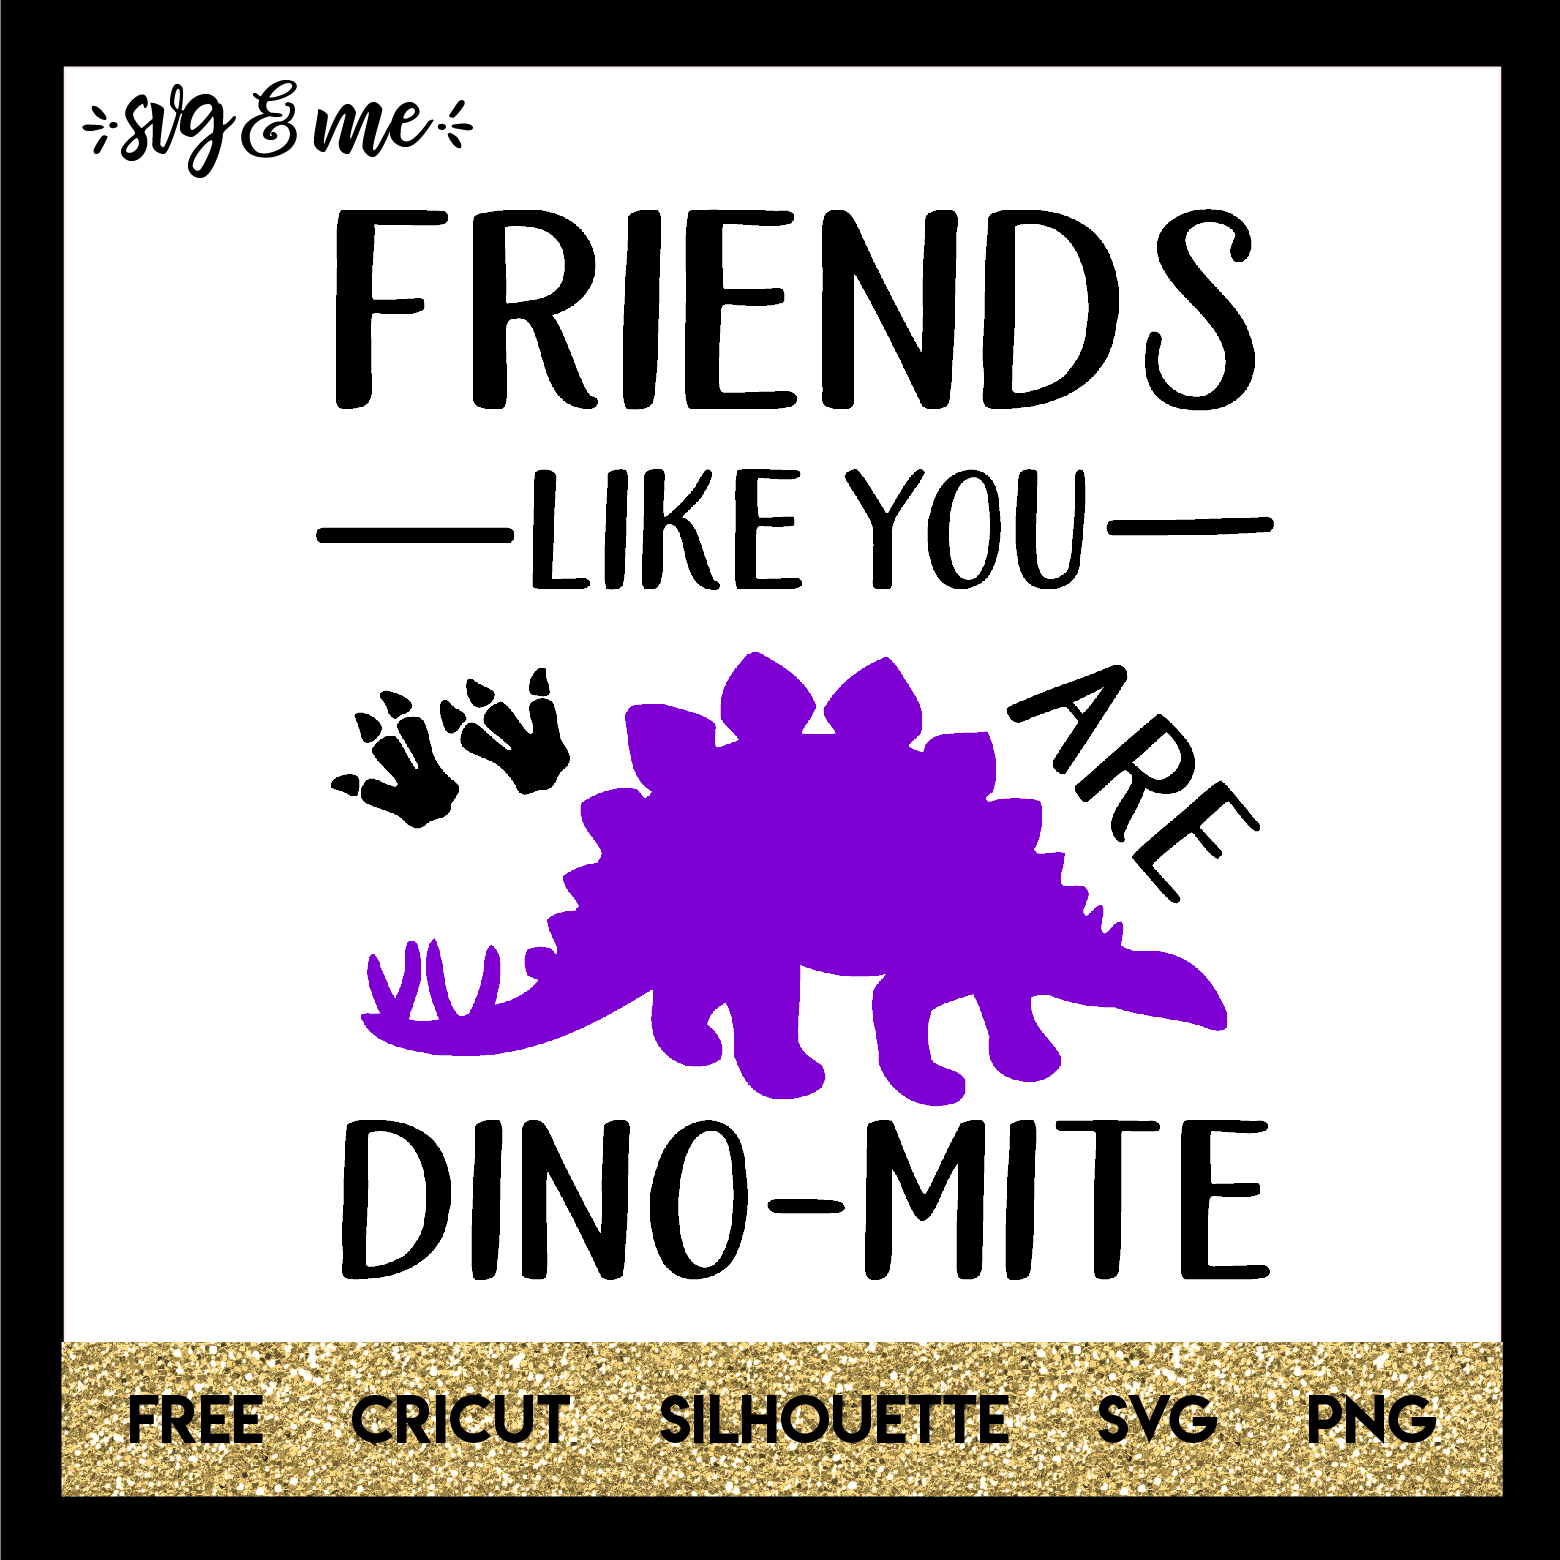 FREE SVG CUT FILE for Cricut and Silhouette DIY Projects - Friends Like You are Dino-Mite SVG